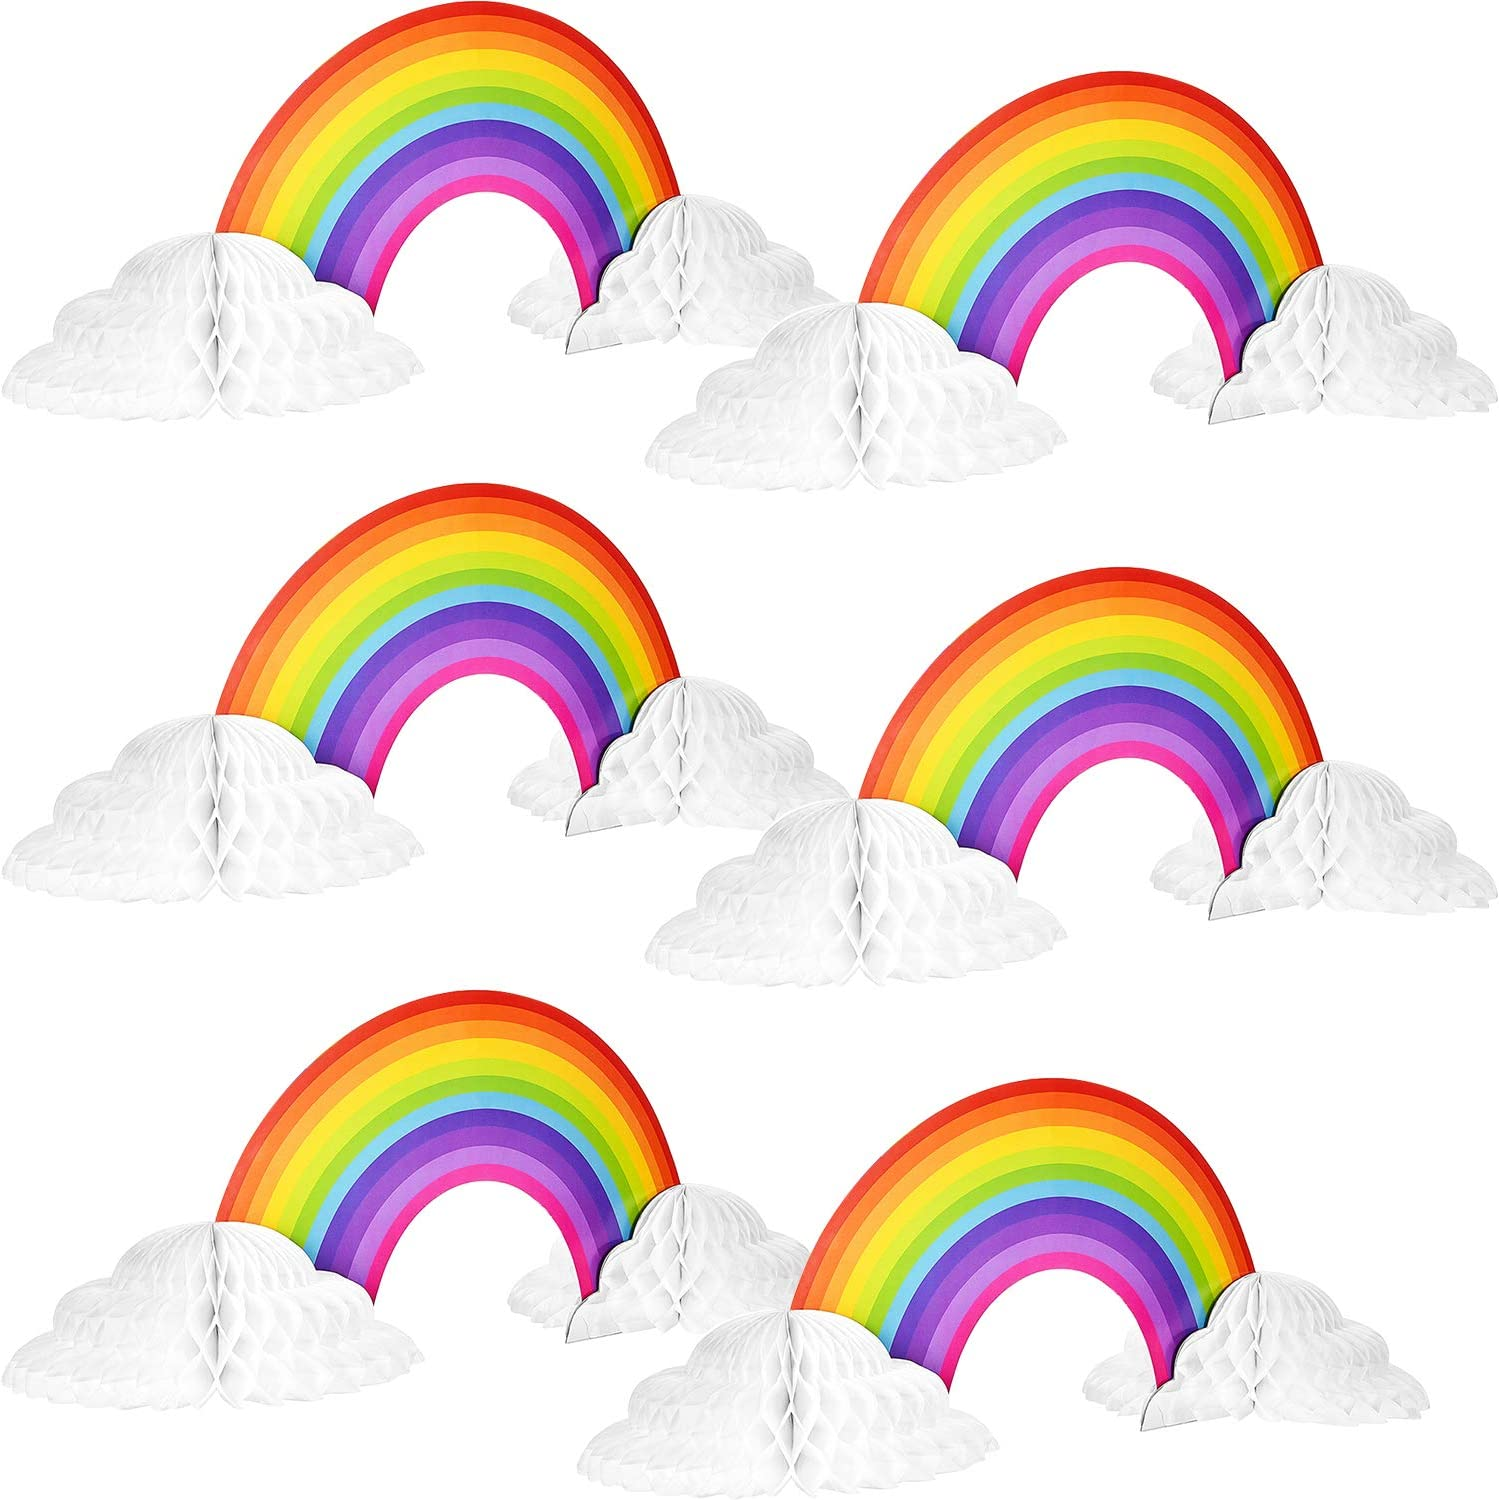 4 Rainbow Honeycomb Paper Centerpiece No Crease Rainbow Cloud Centerpieces Converting Rainbow Centerpieces for Birthday Baby Shower Decoration